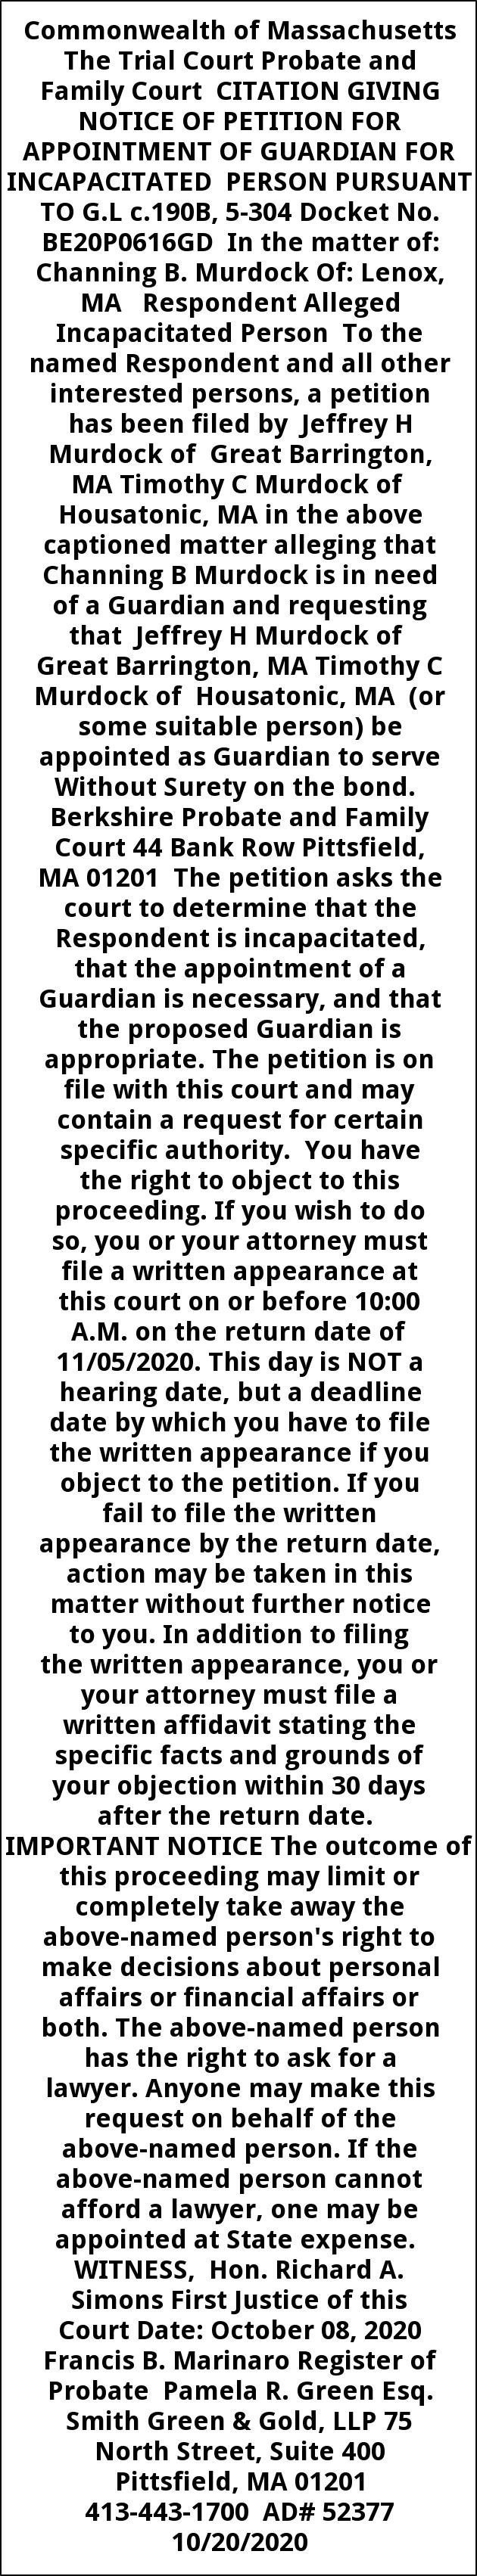 Citation Giving Notice of Petition